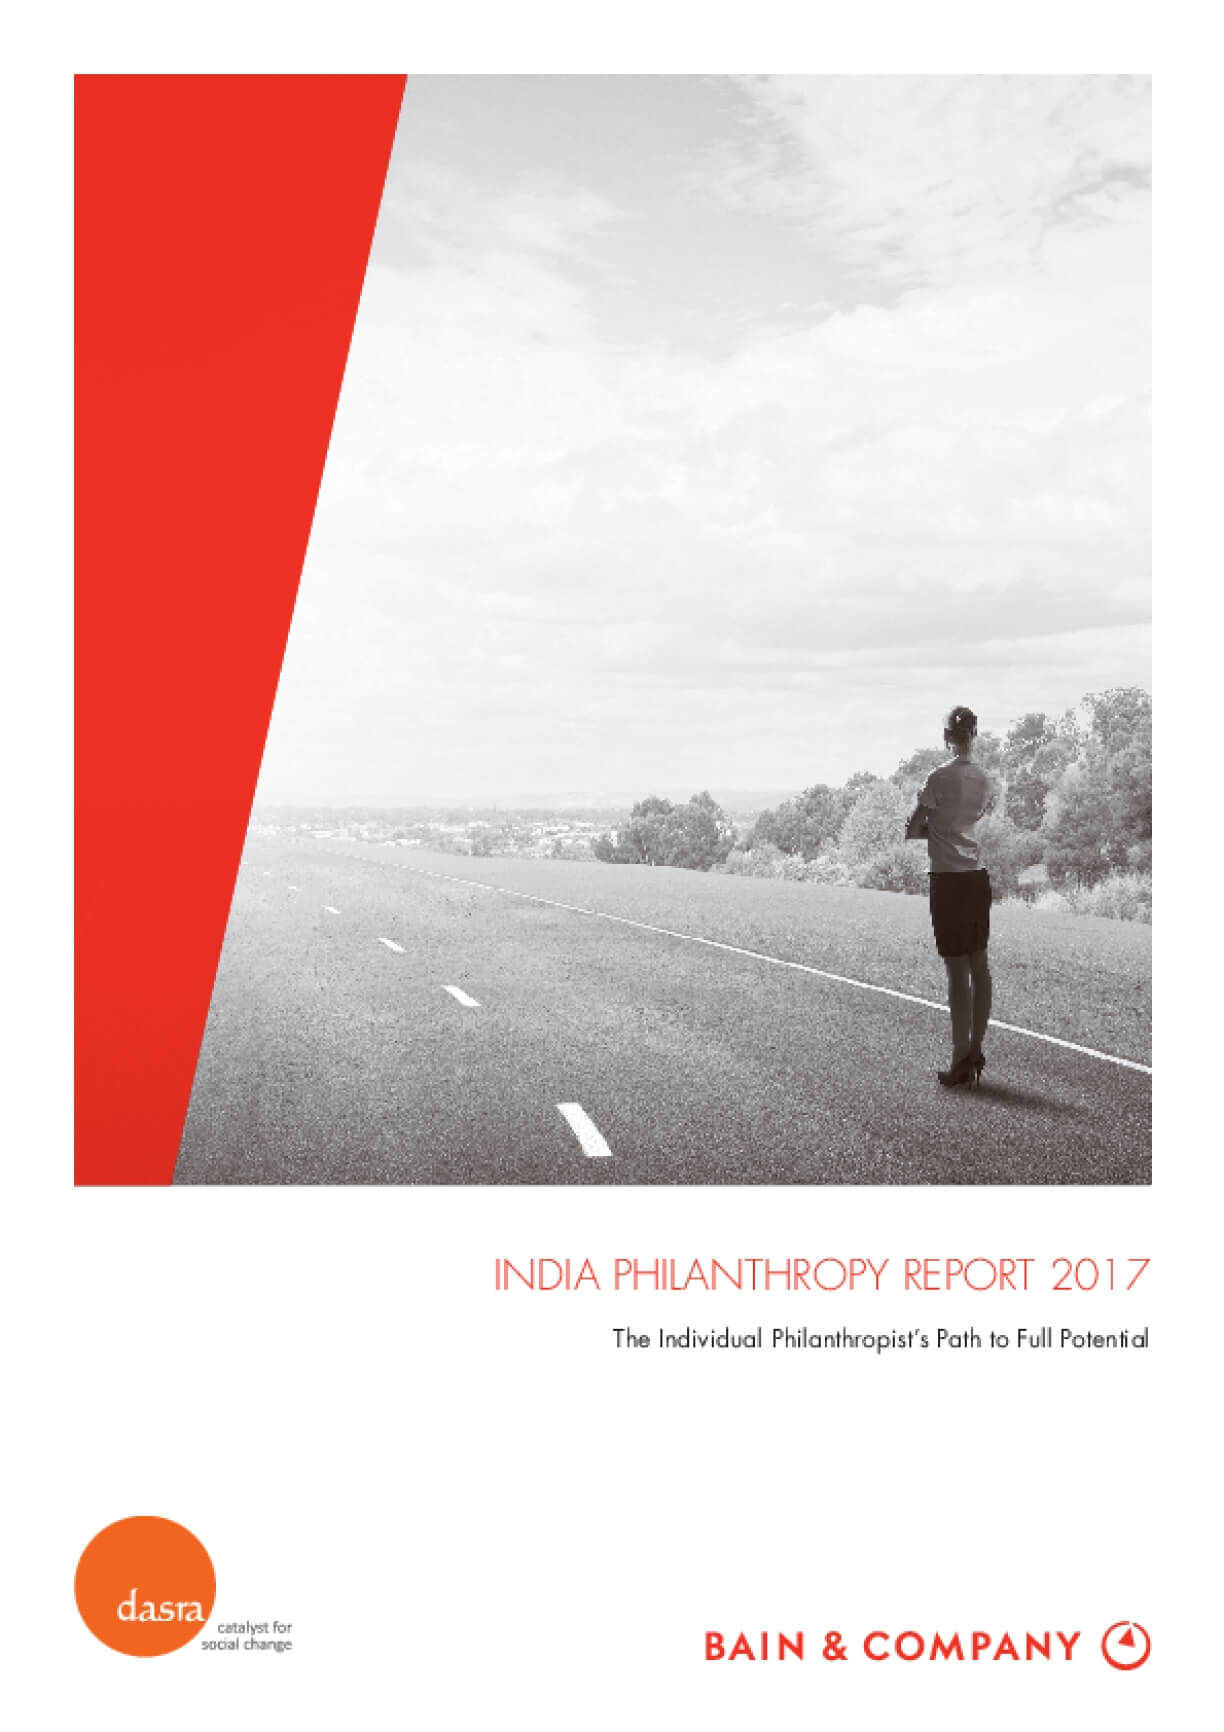 India Philanthropy Report 2017